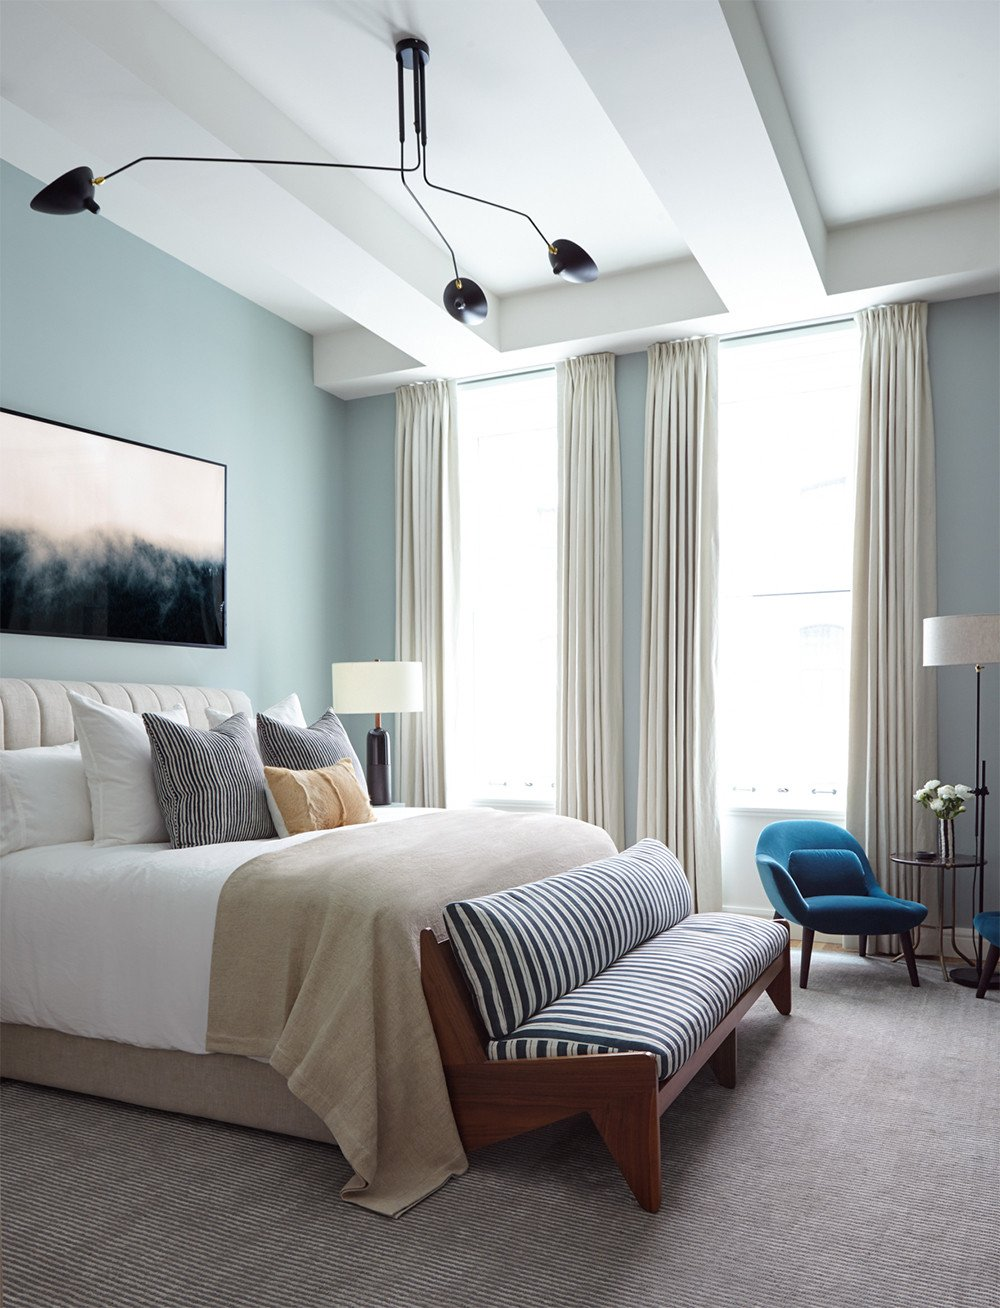 Master Bedroom Design master bedroom design Master Bedroom Design Tips From Top Designers Master Bedroom Design Tips From Top Designers 12